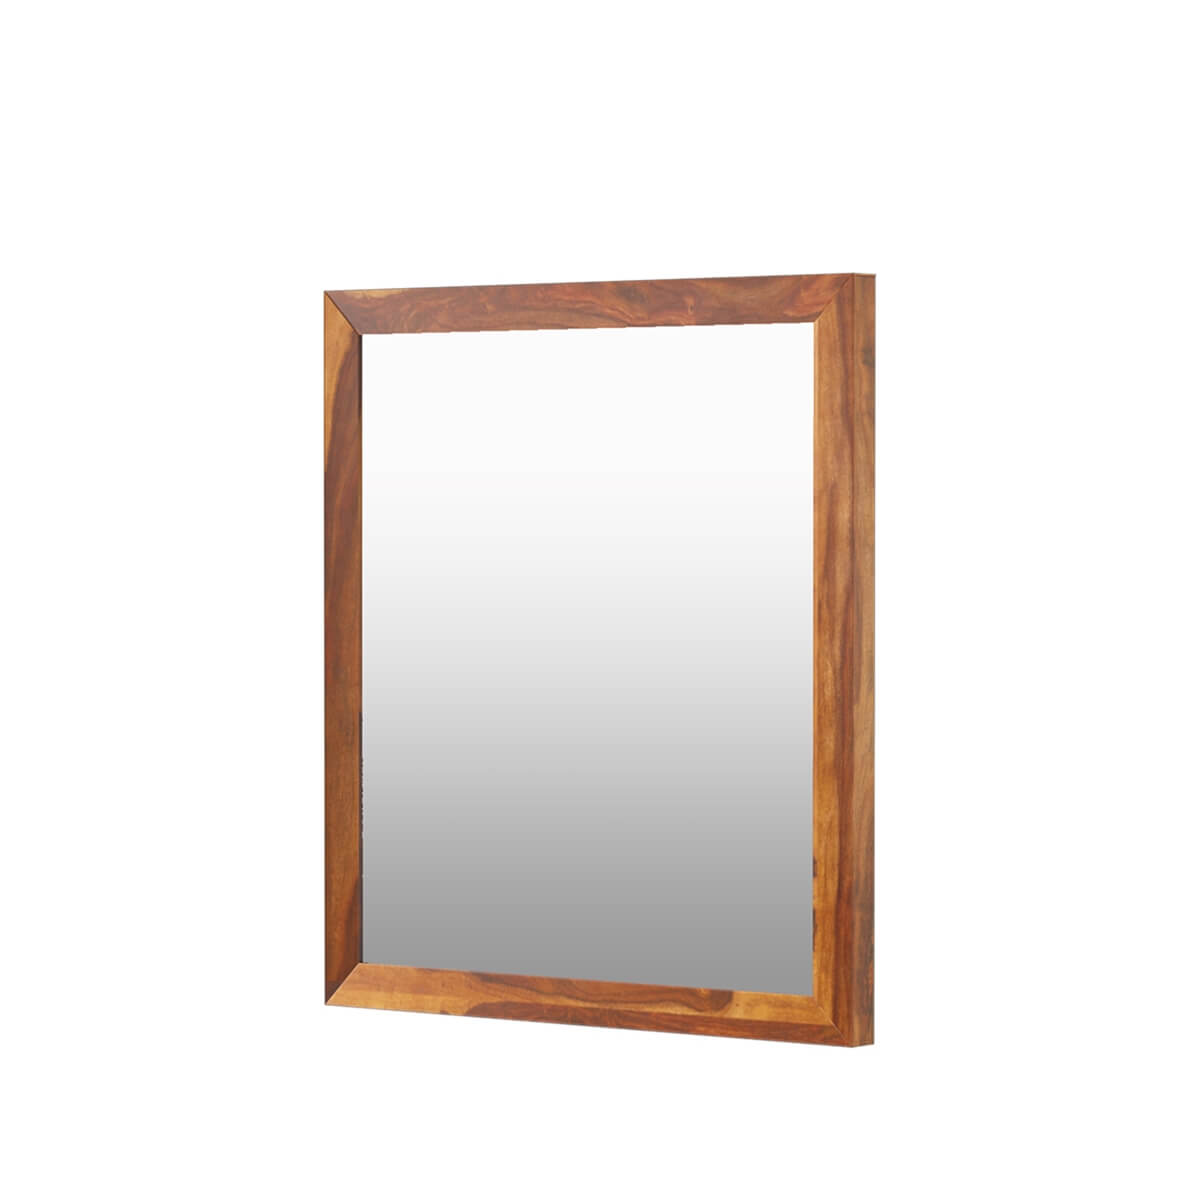 Flagstaff Handcrafted Solid Wood Mirror Frame